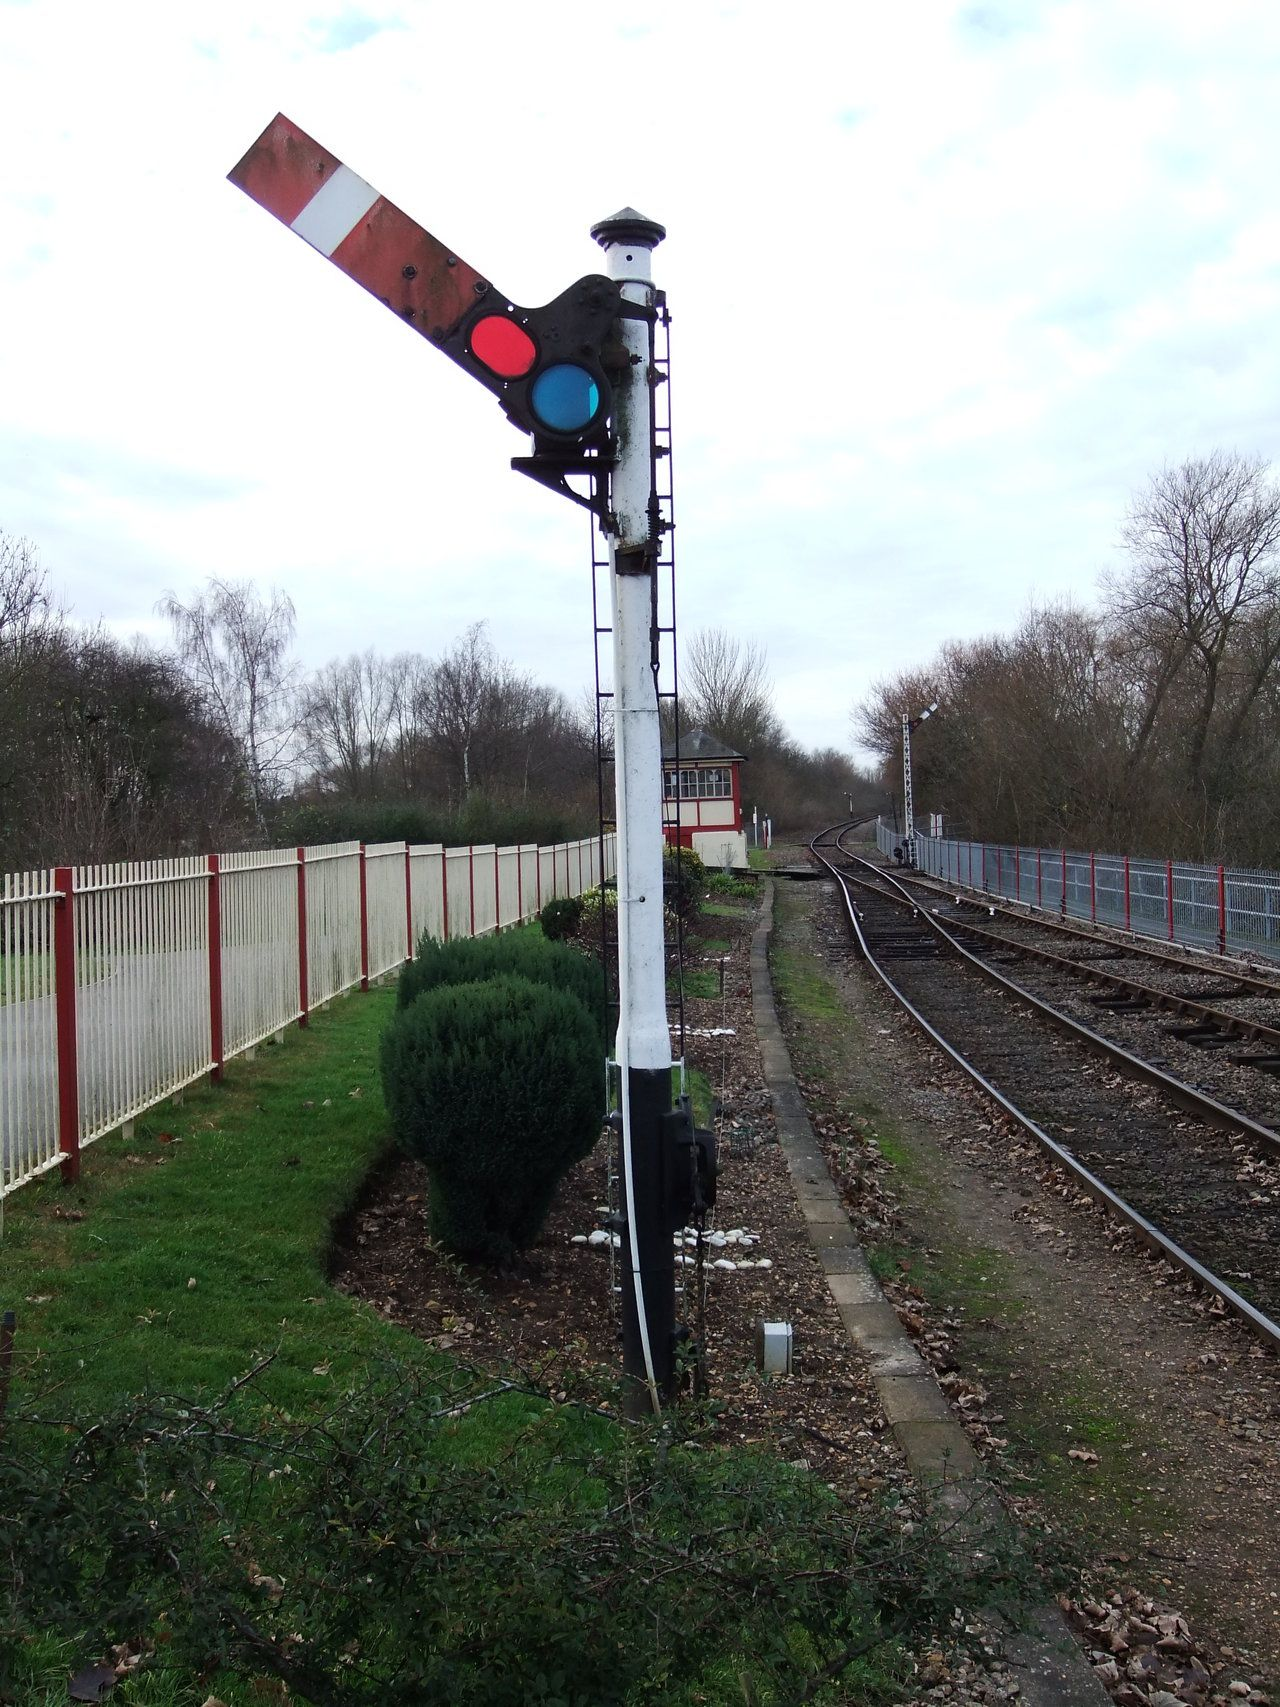 Nene Valley Railway, uk. Upper-quadrant semaphore signal on LNER ...